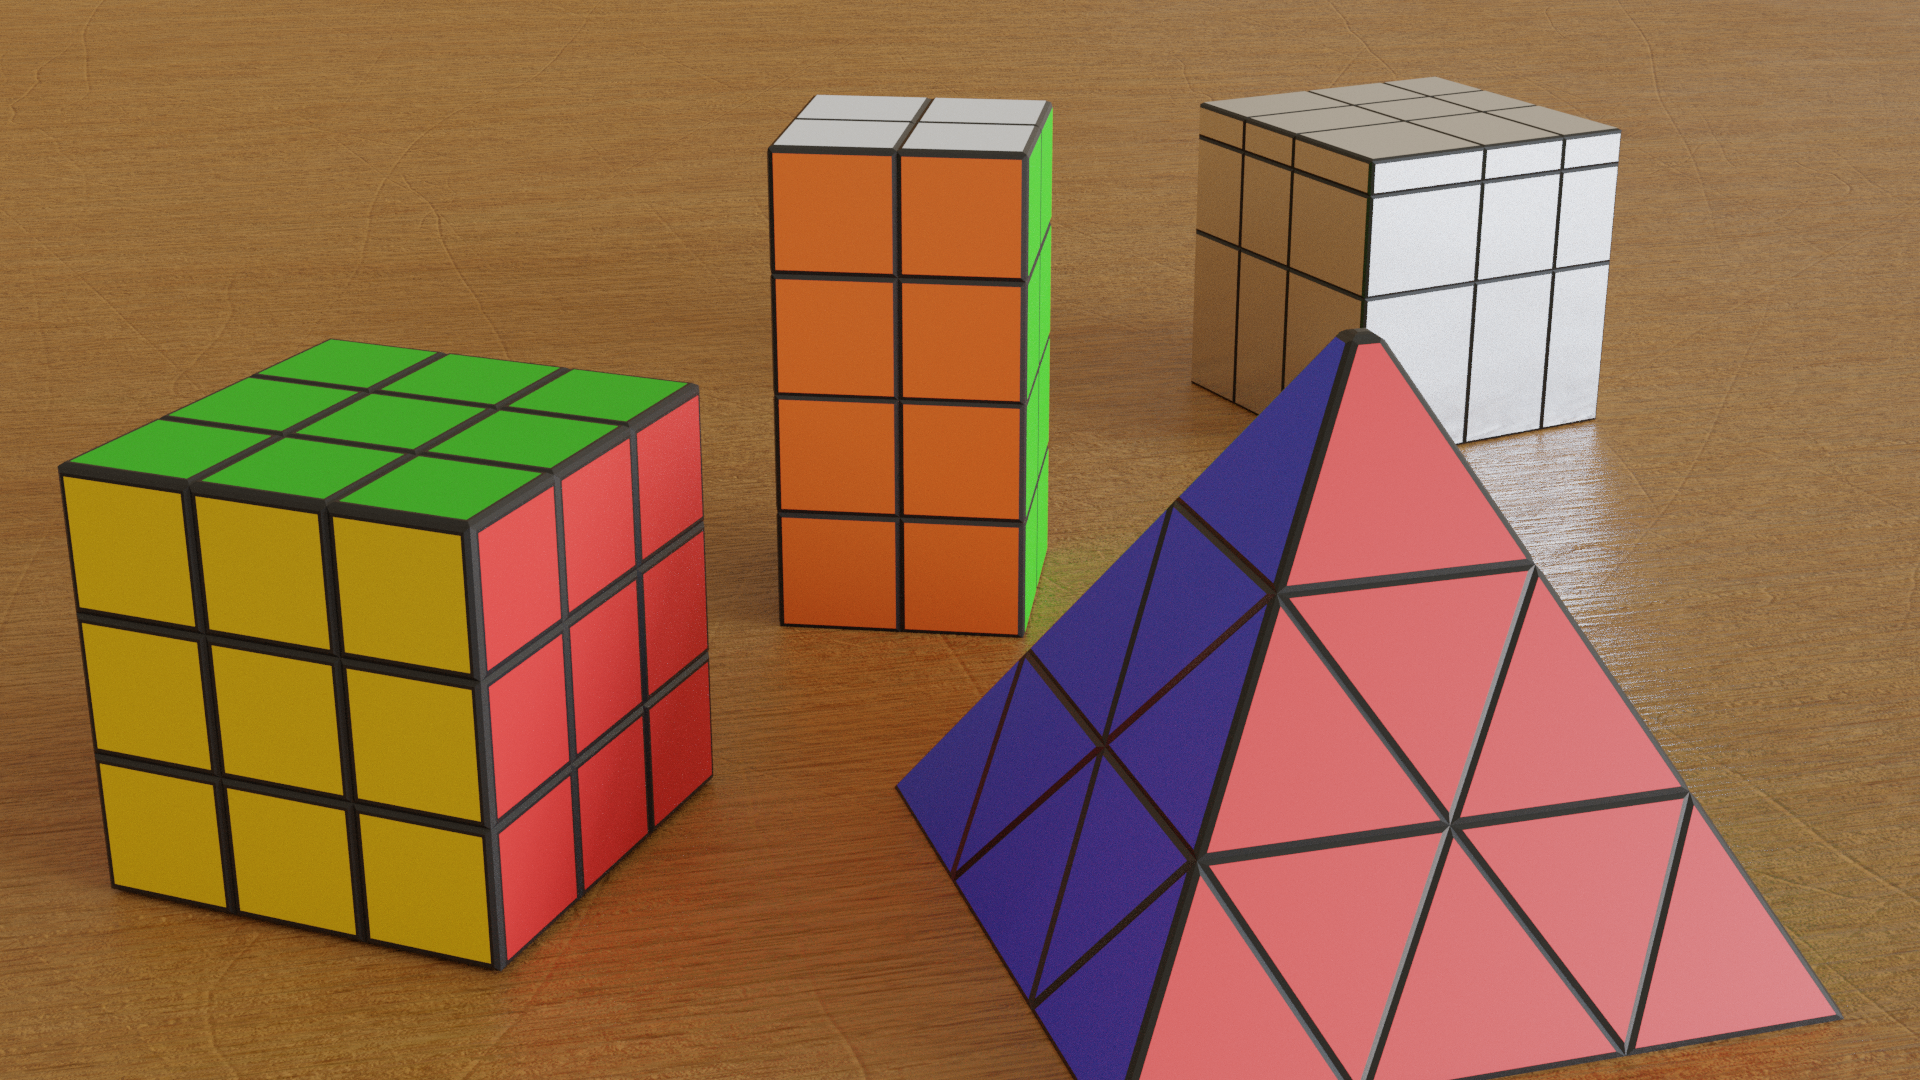 Rubix toys preview image 1